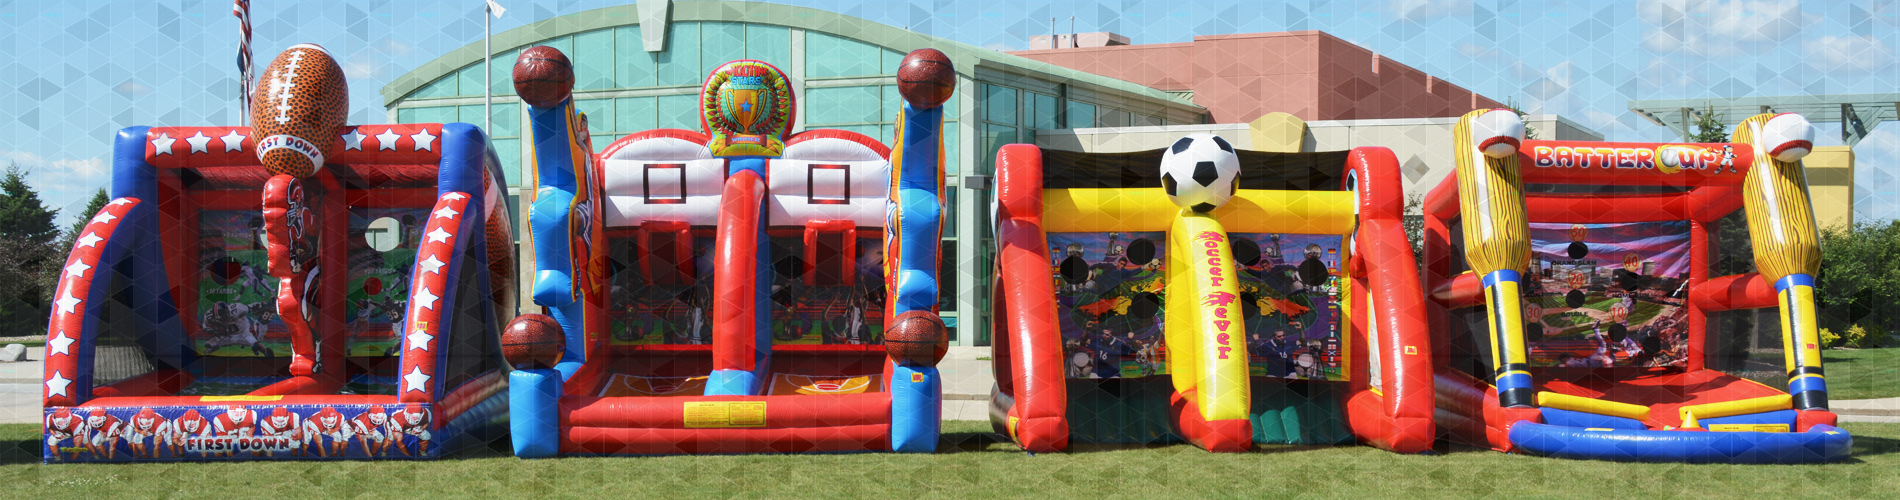 Midwest Inflatables Ames Iowa Sports Games Inflatables